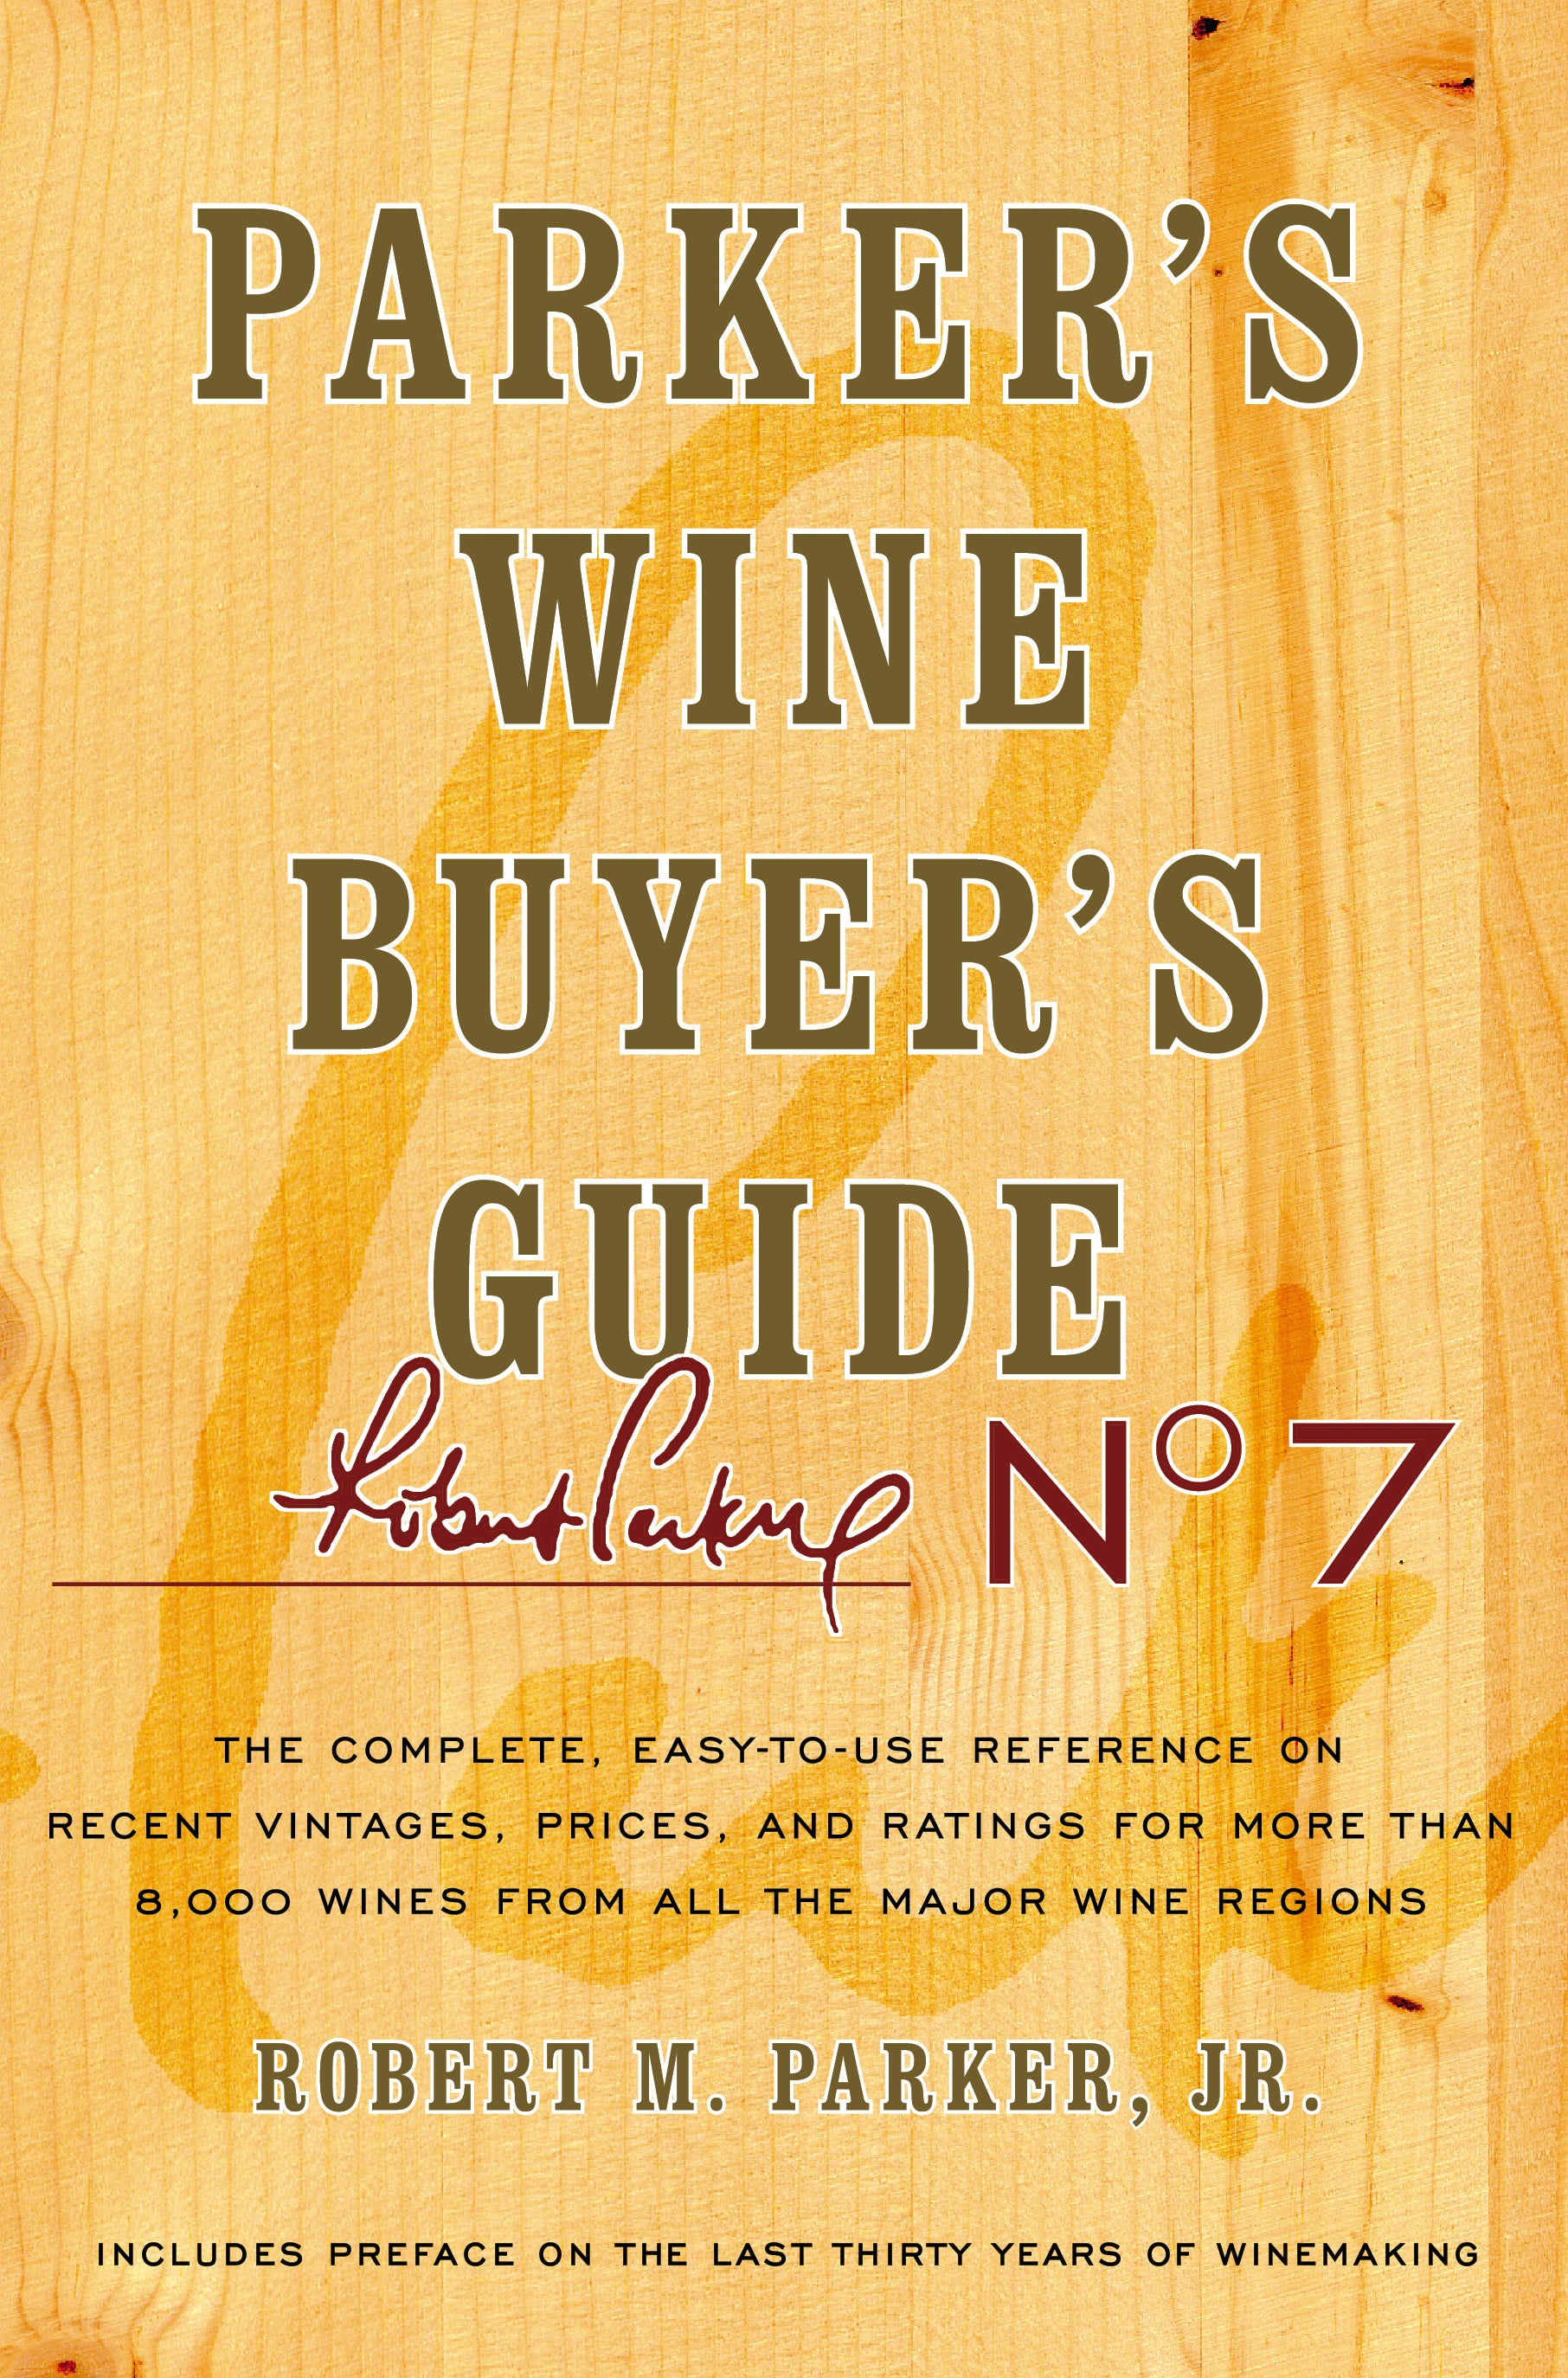 Parker's Wine Buyer's Guide 7th Edition